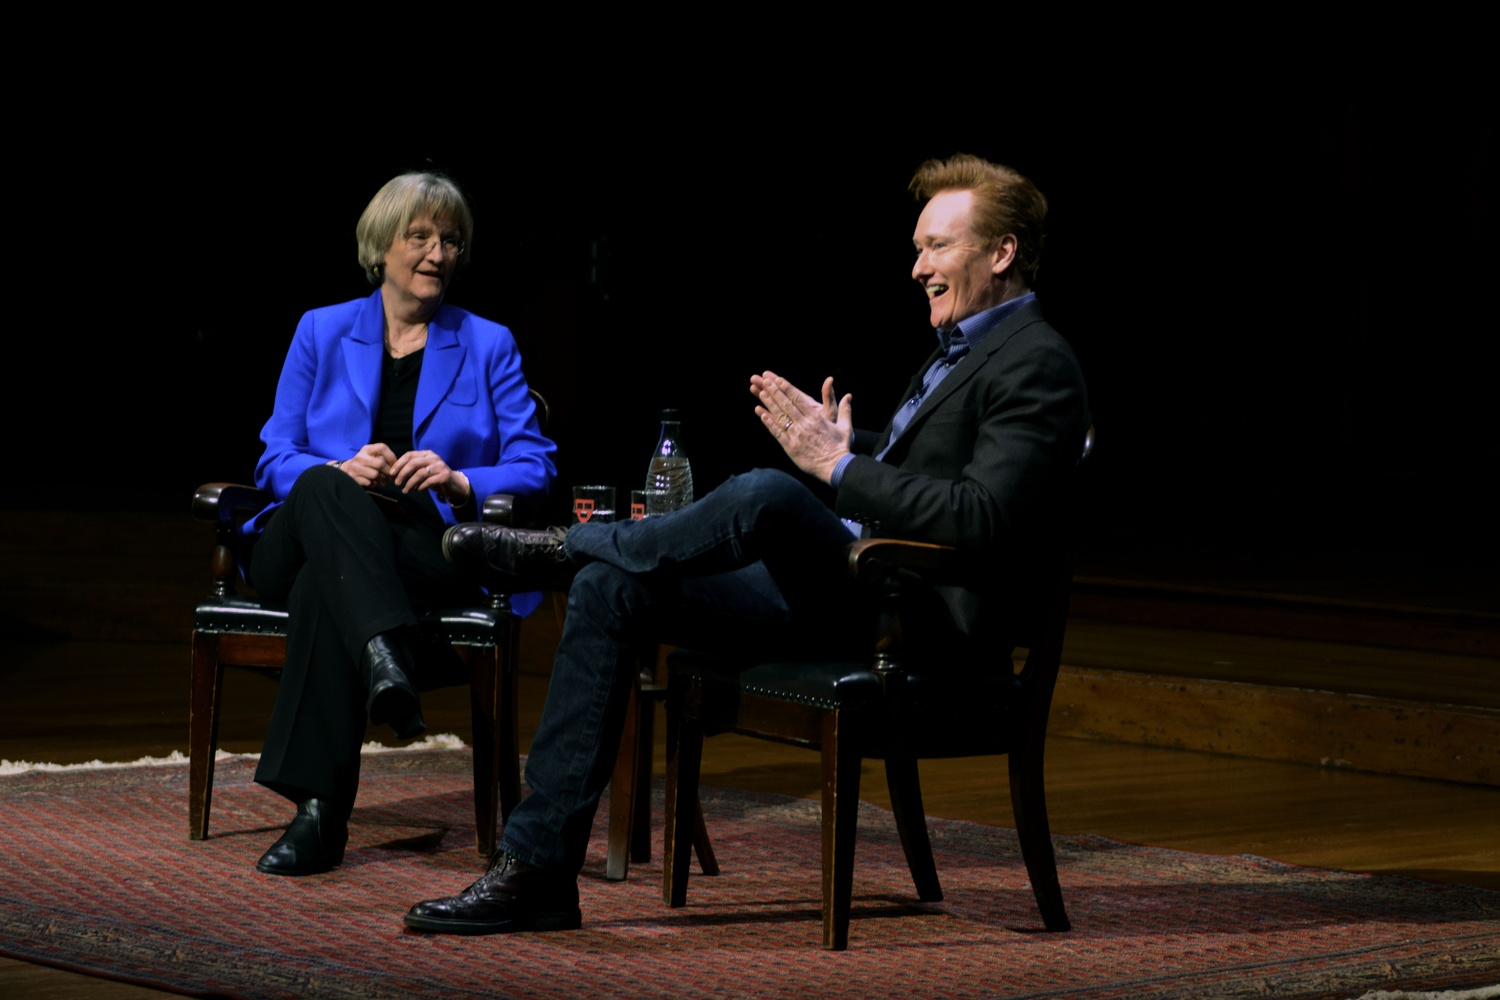 Conan C. O'Brien '85 speaks at a campus event with former University President Drew G. Faust in 2016.